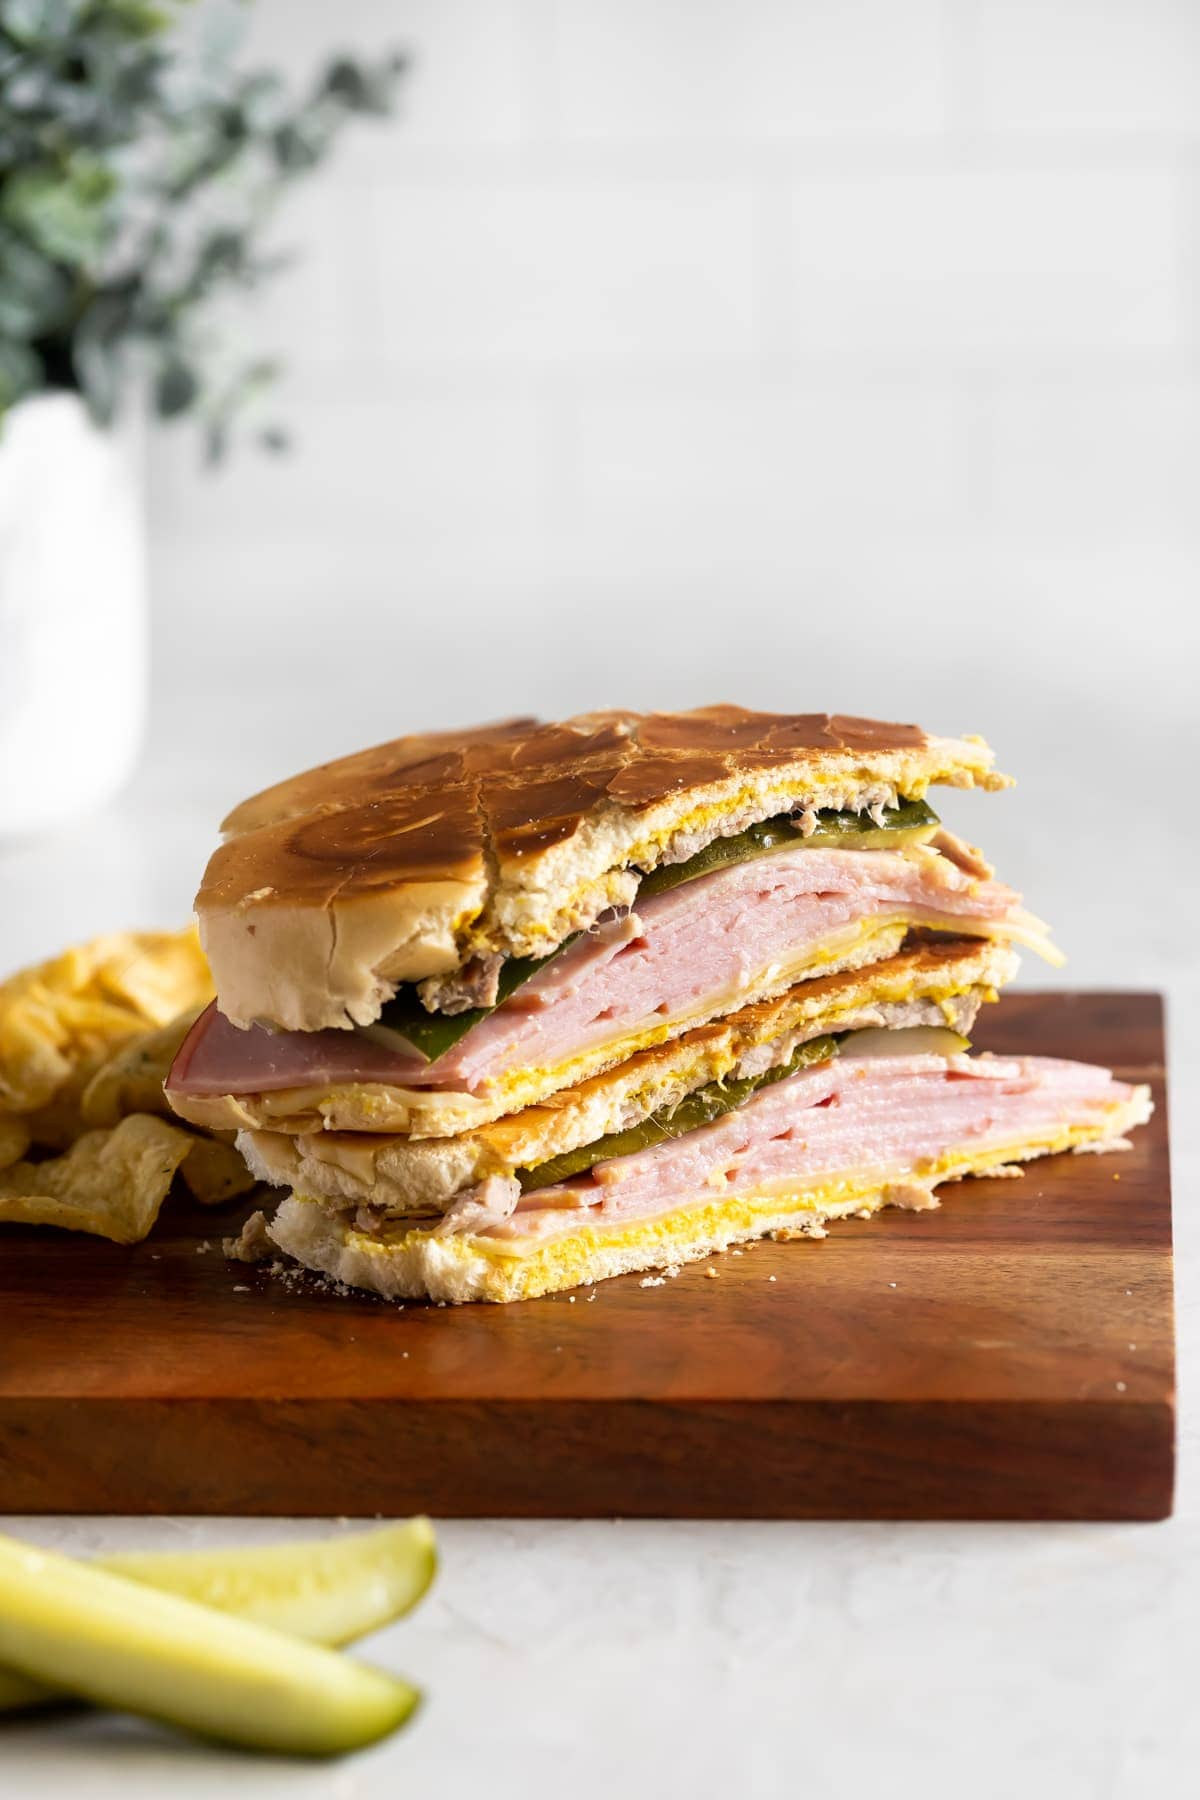 Cuban sandwich sliced in half on a cutting board with chips